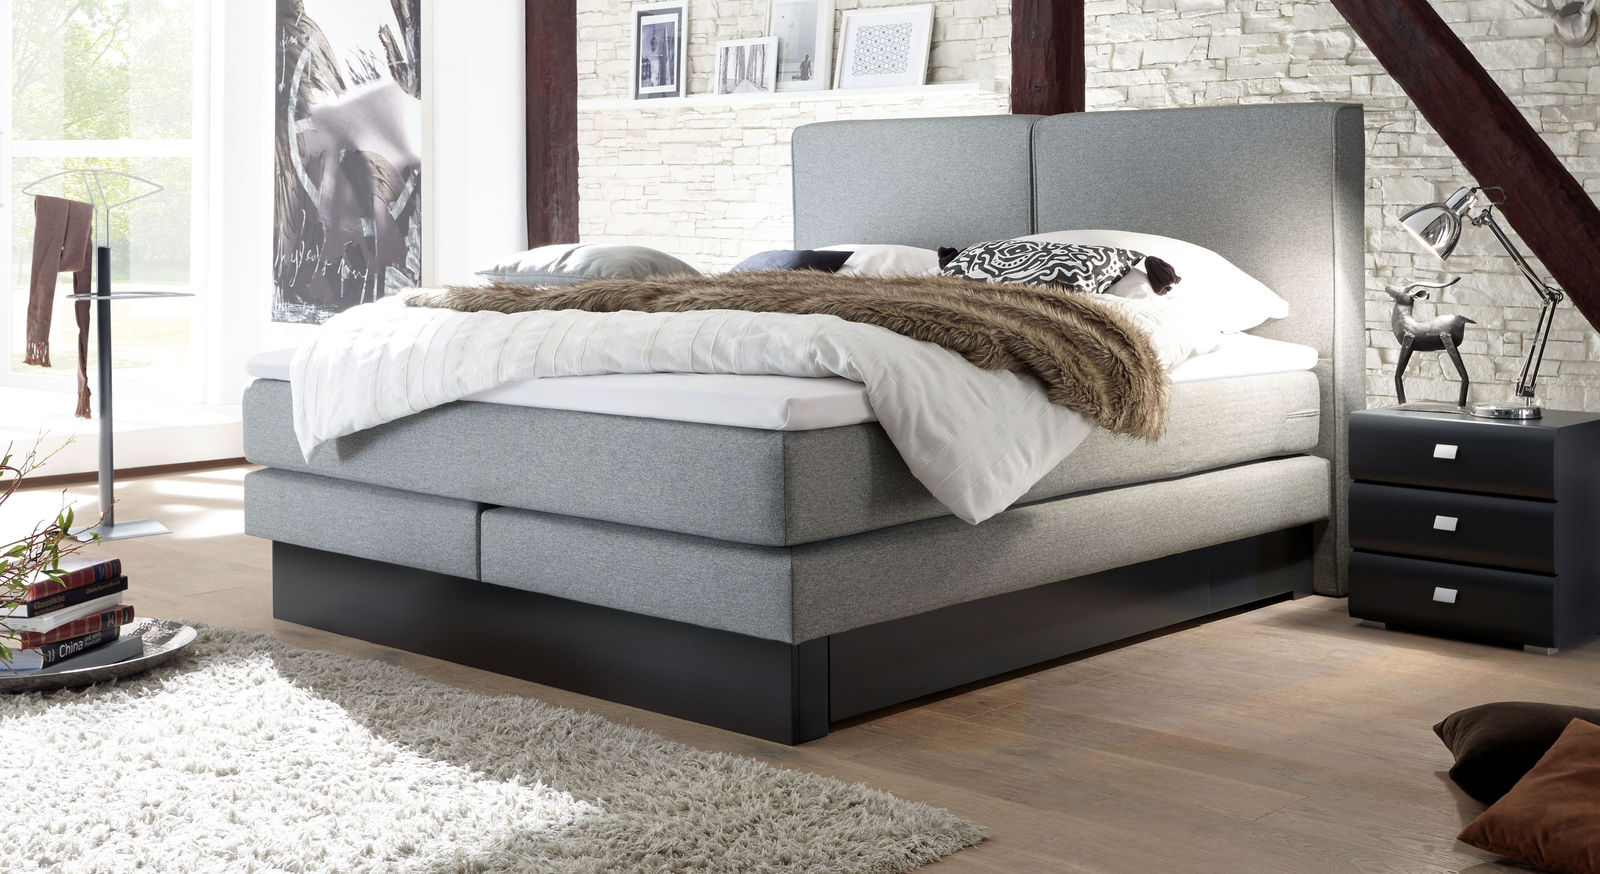 www boxspringbett de boxspringbett in z b 160x200 cm in h2 bis h5 g nstig arlon boxspringbett. Black Bedroom Furniture Sets. Home Design Ideas